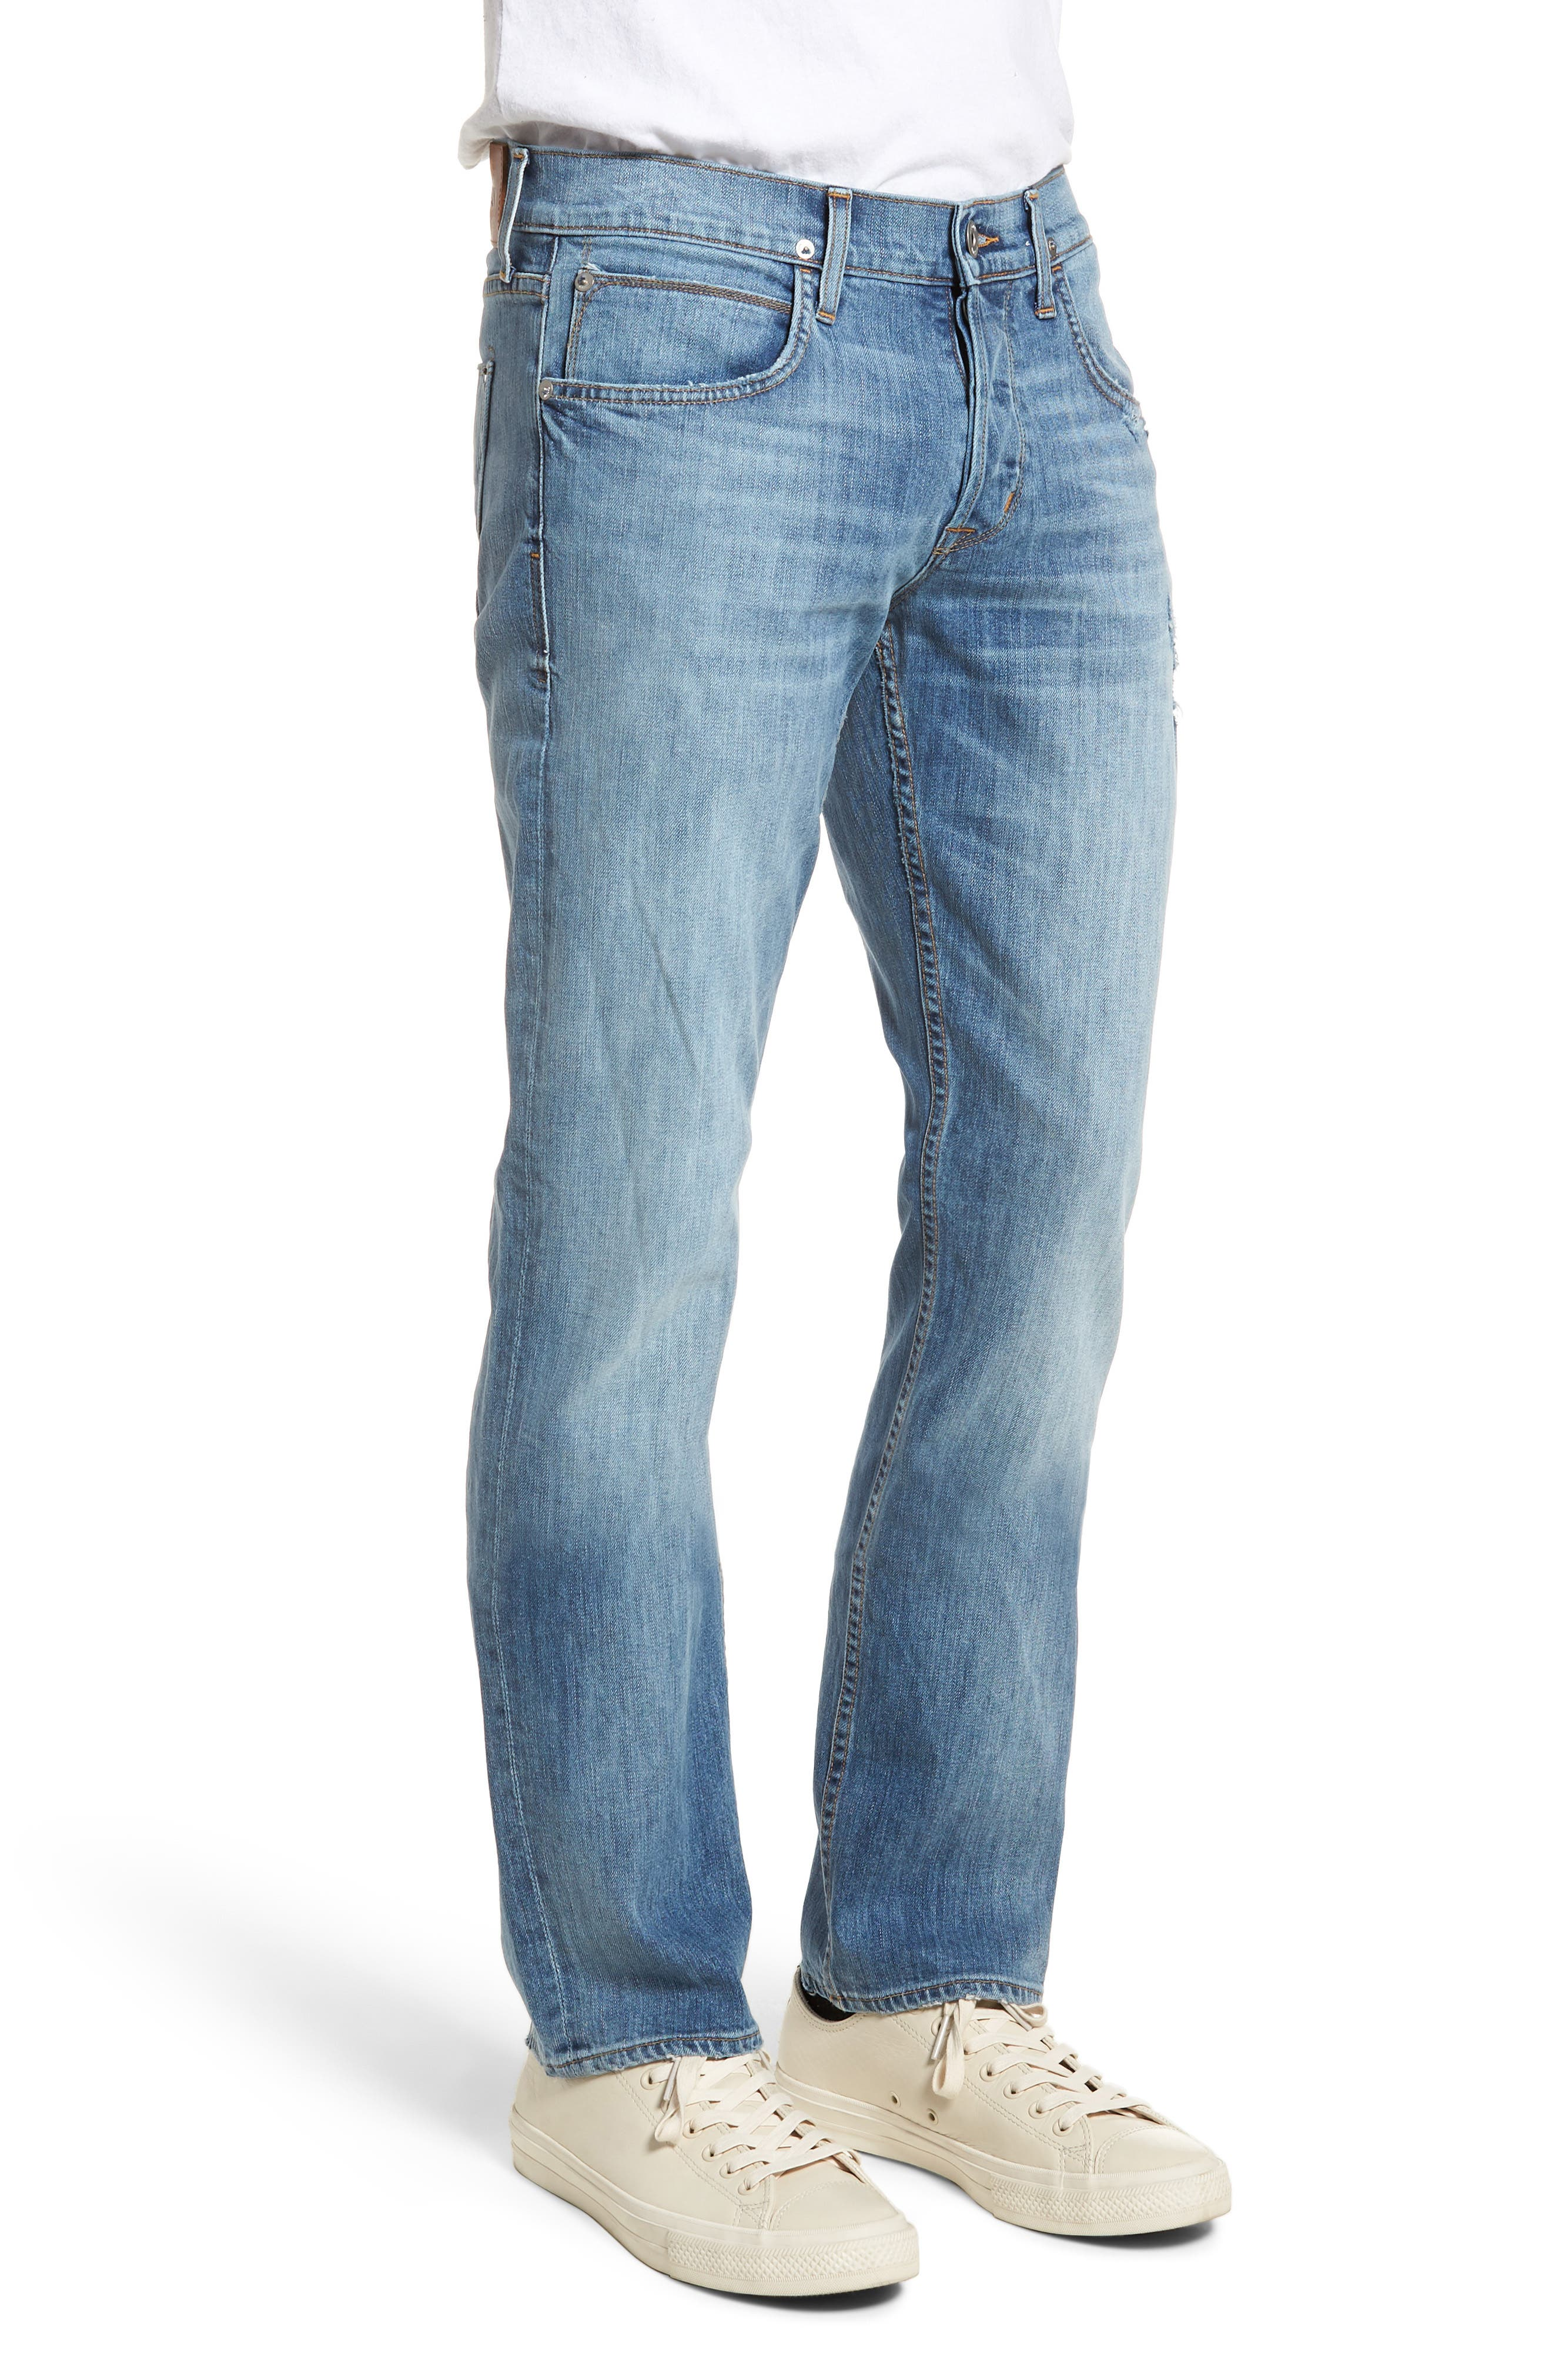 Byron Slim Straight Fit Jeans,                             Alternate thumbnail 3, color,                             425